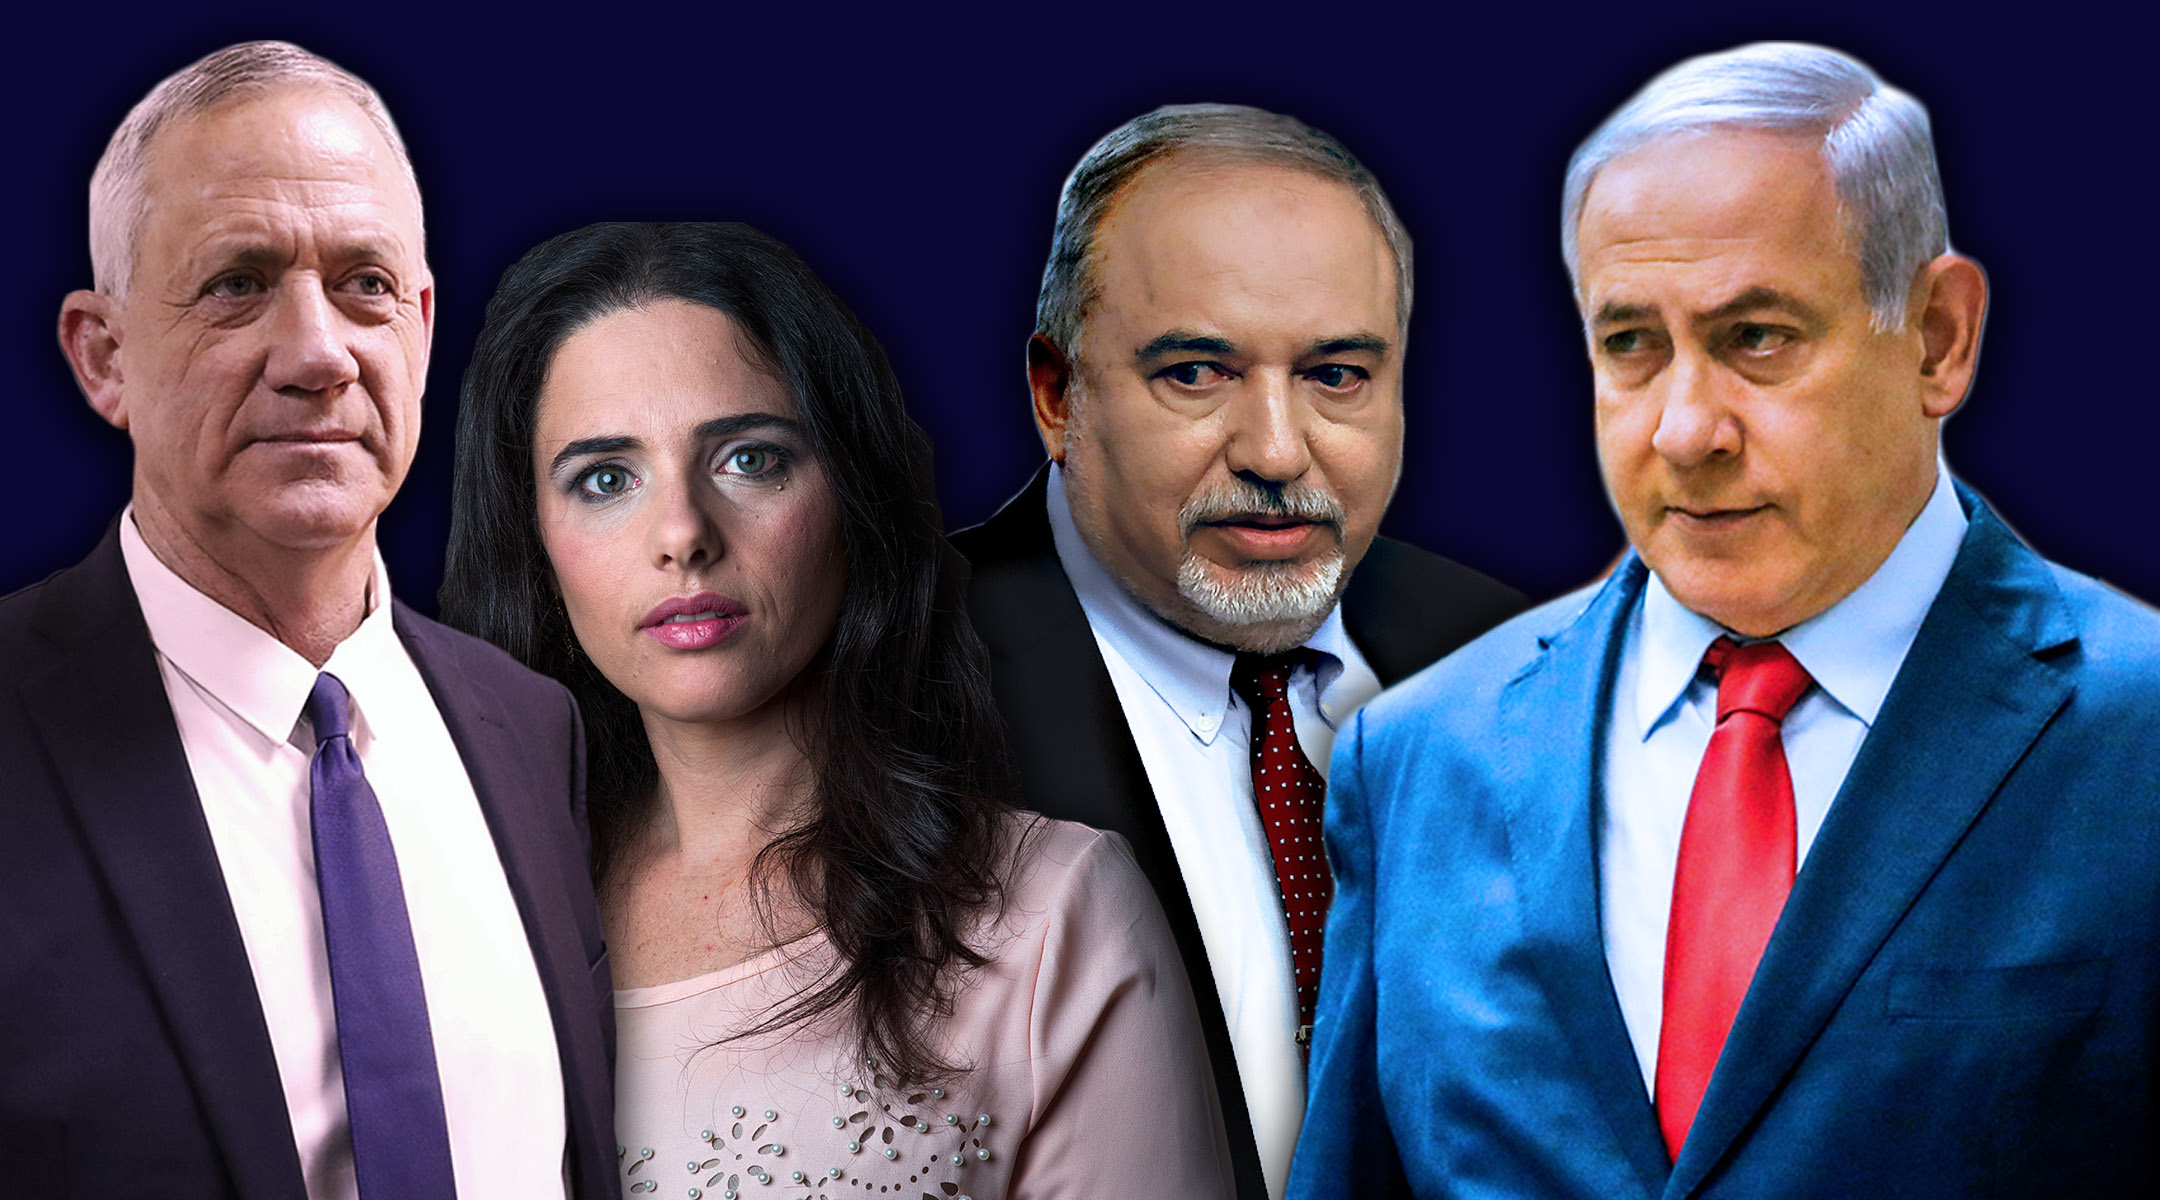 Israel election candidates